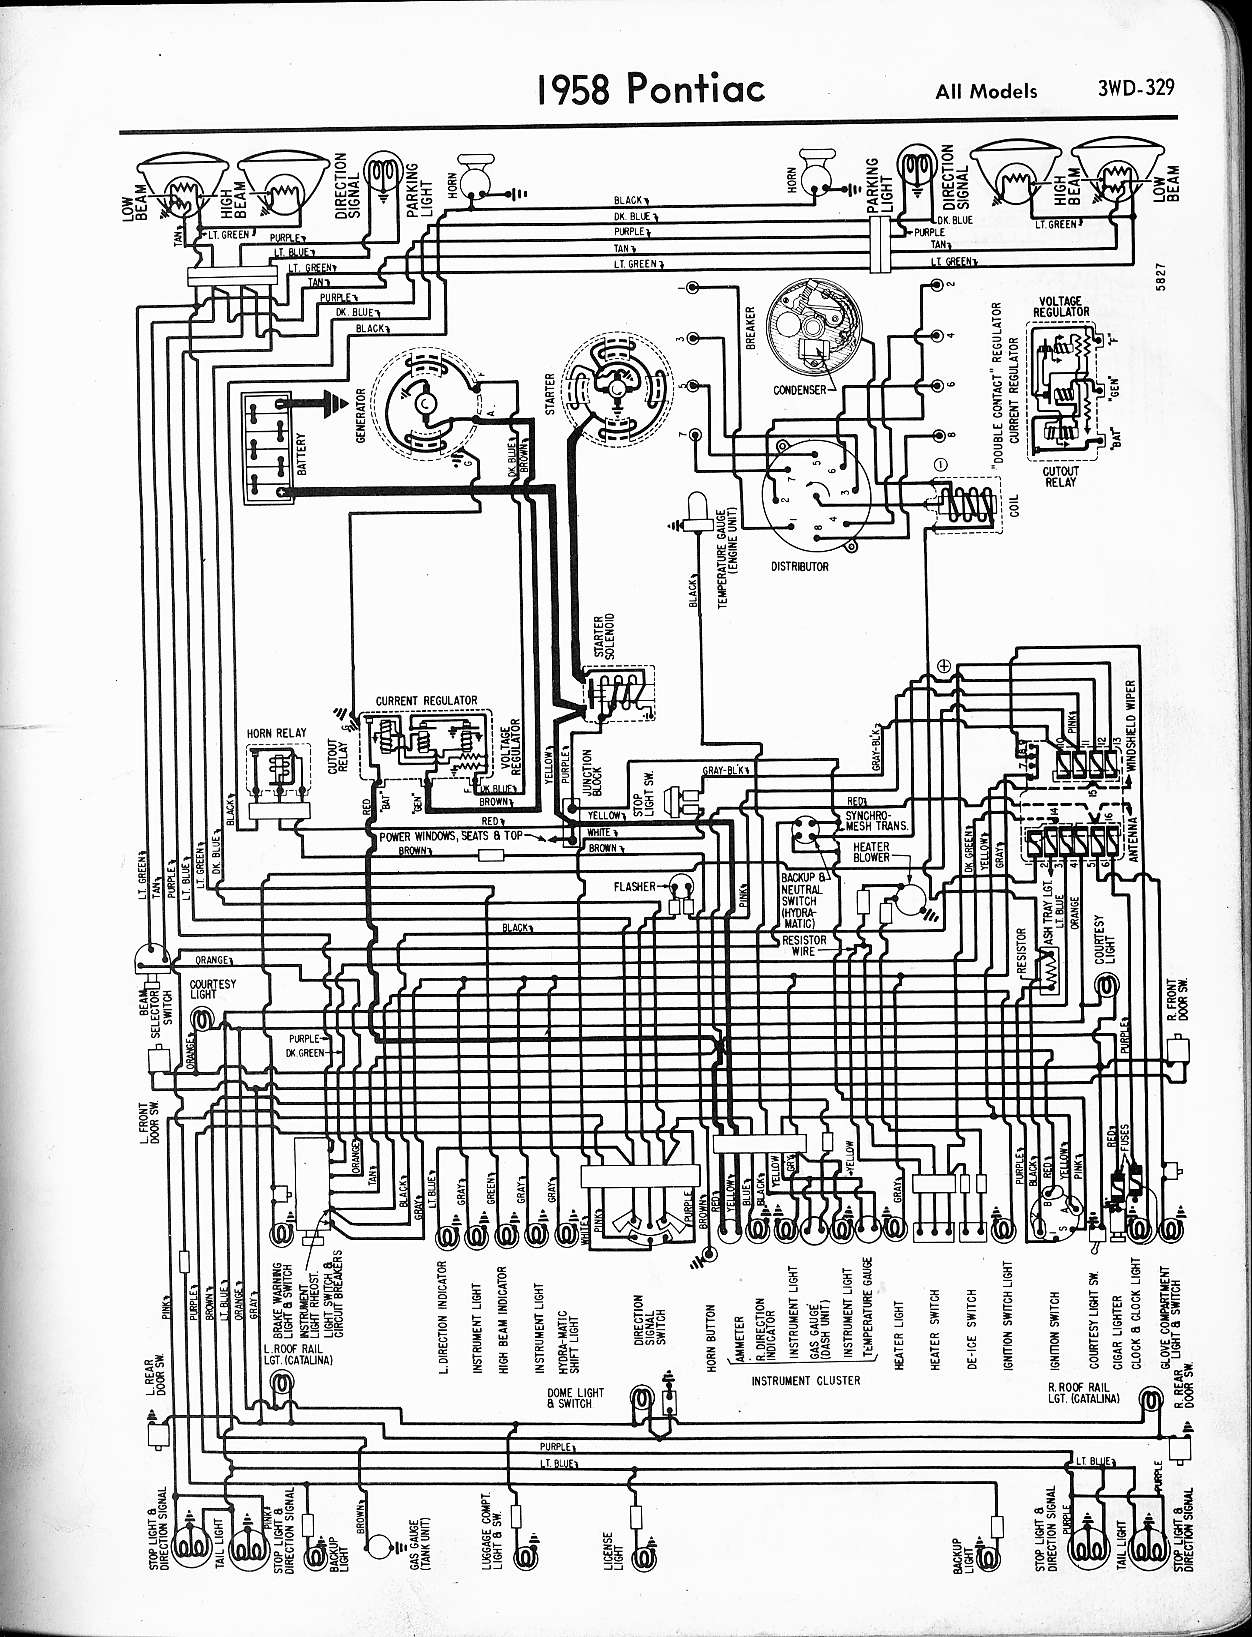 wallace racing wiring diagrams rh wallaceracing com pontiac g5 wiring  diagram pontiac g5 radio wiring diagram